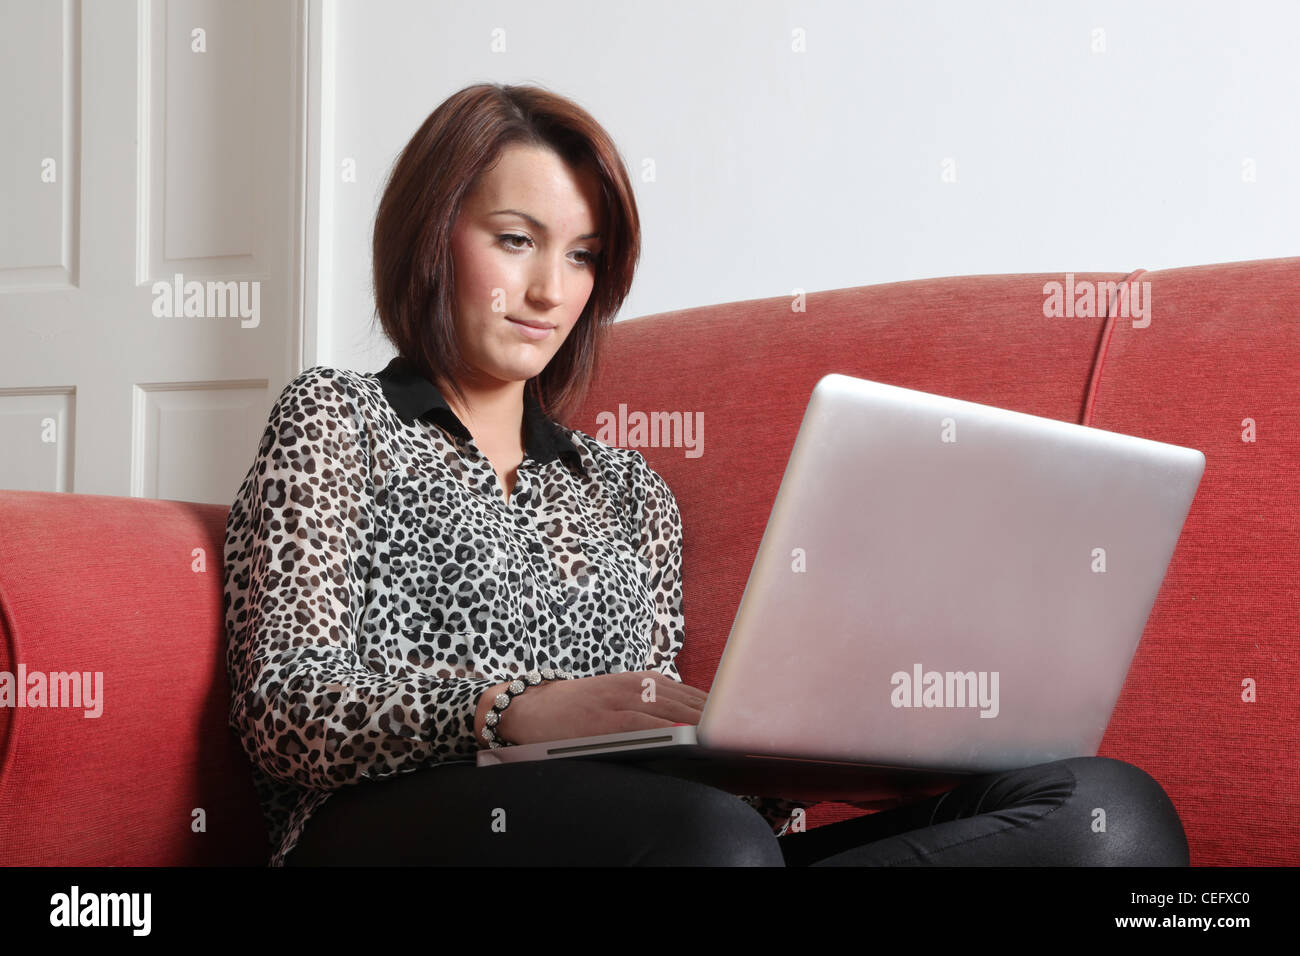 Profile of a single young female using a laptop. - Stock Image